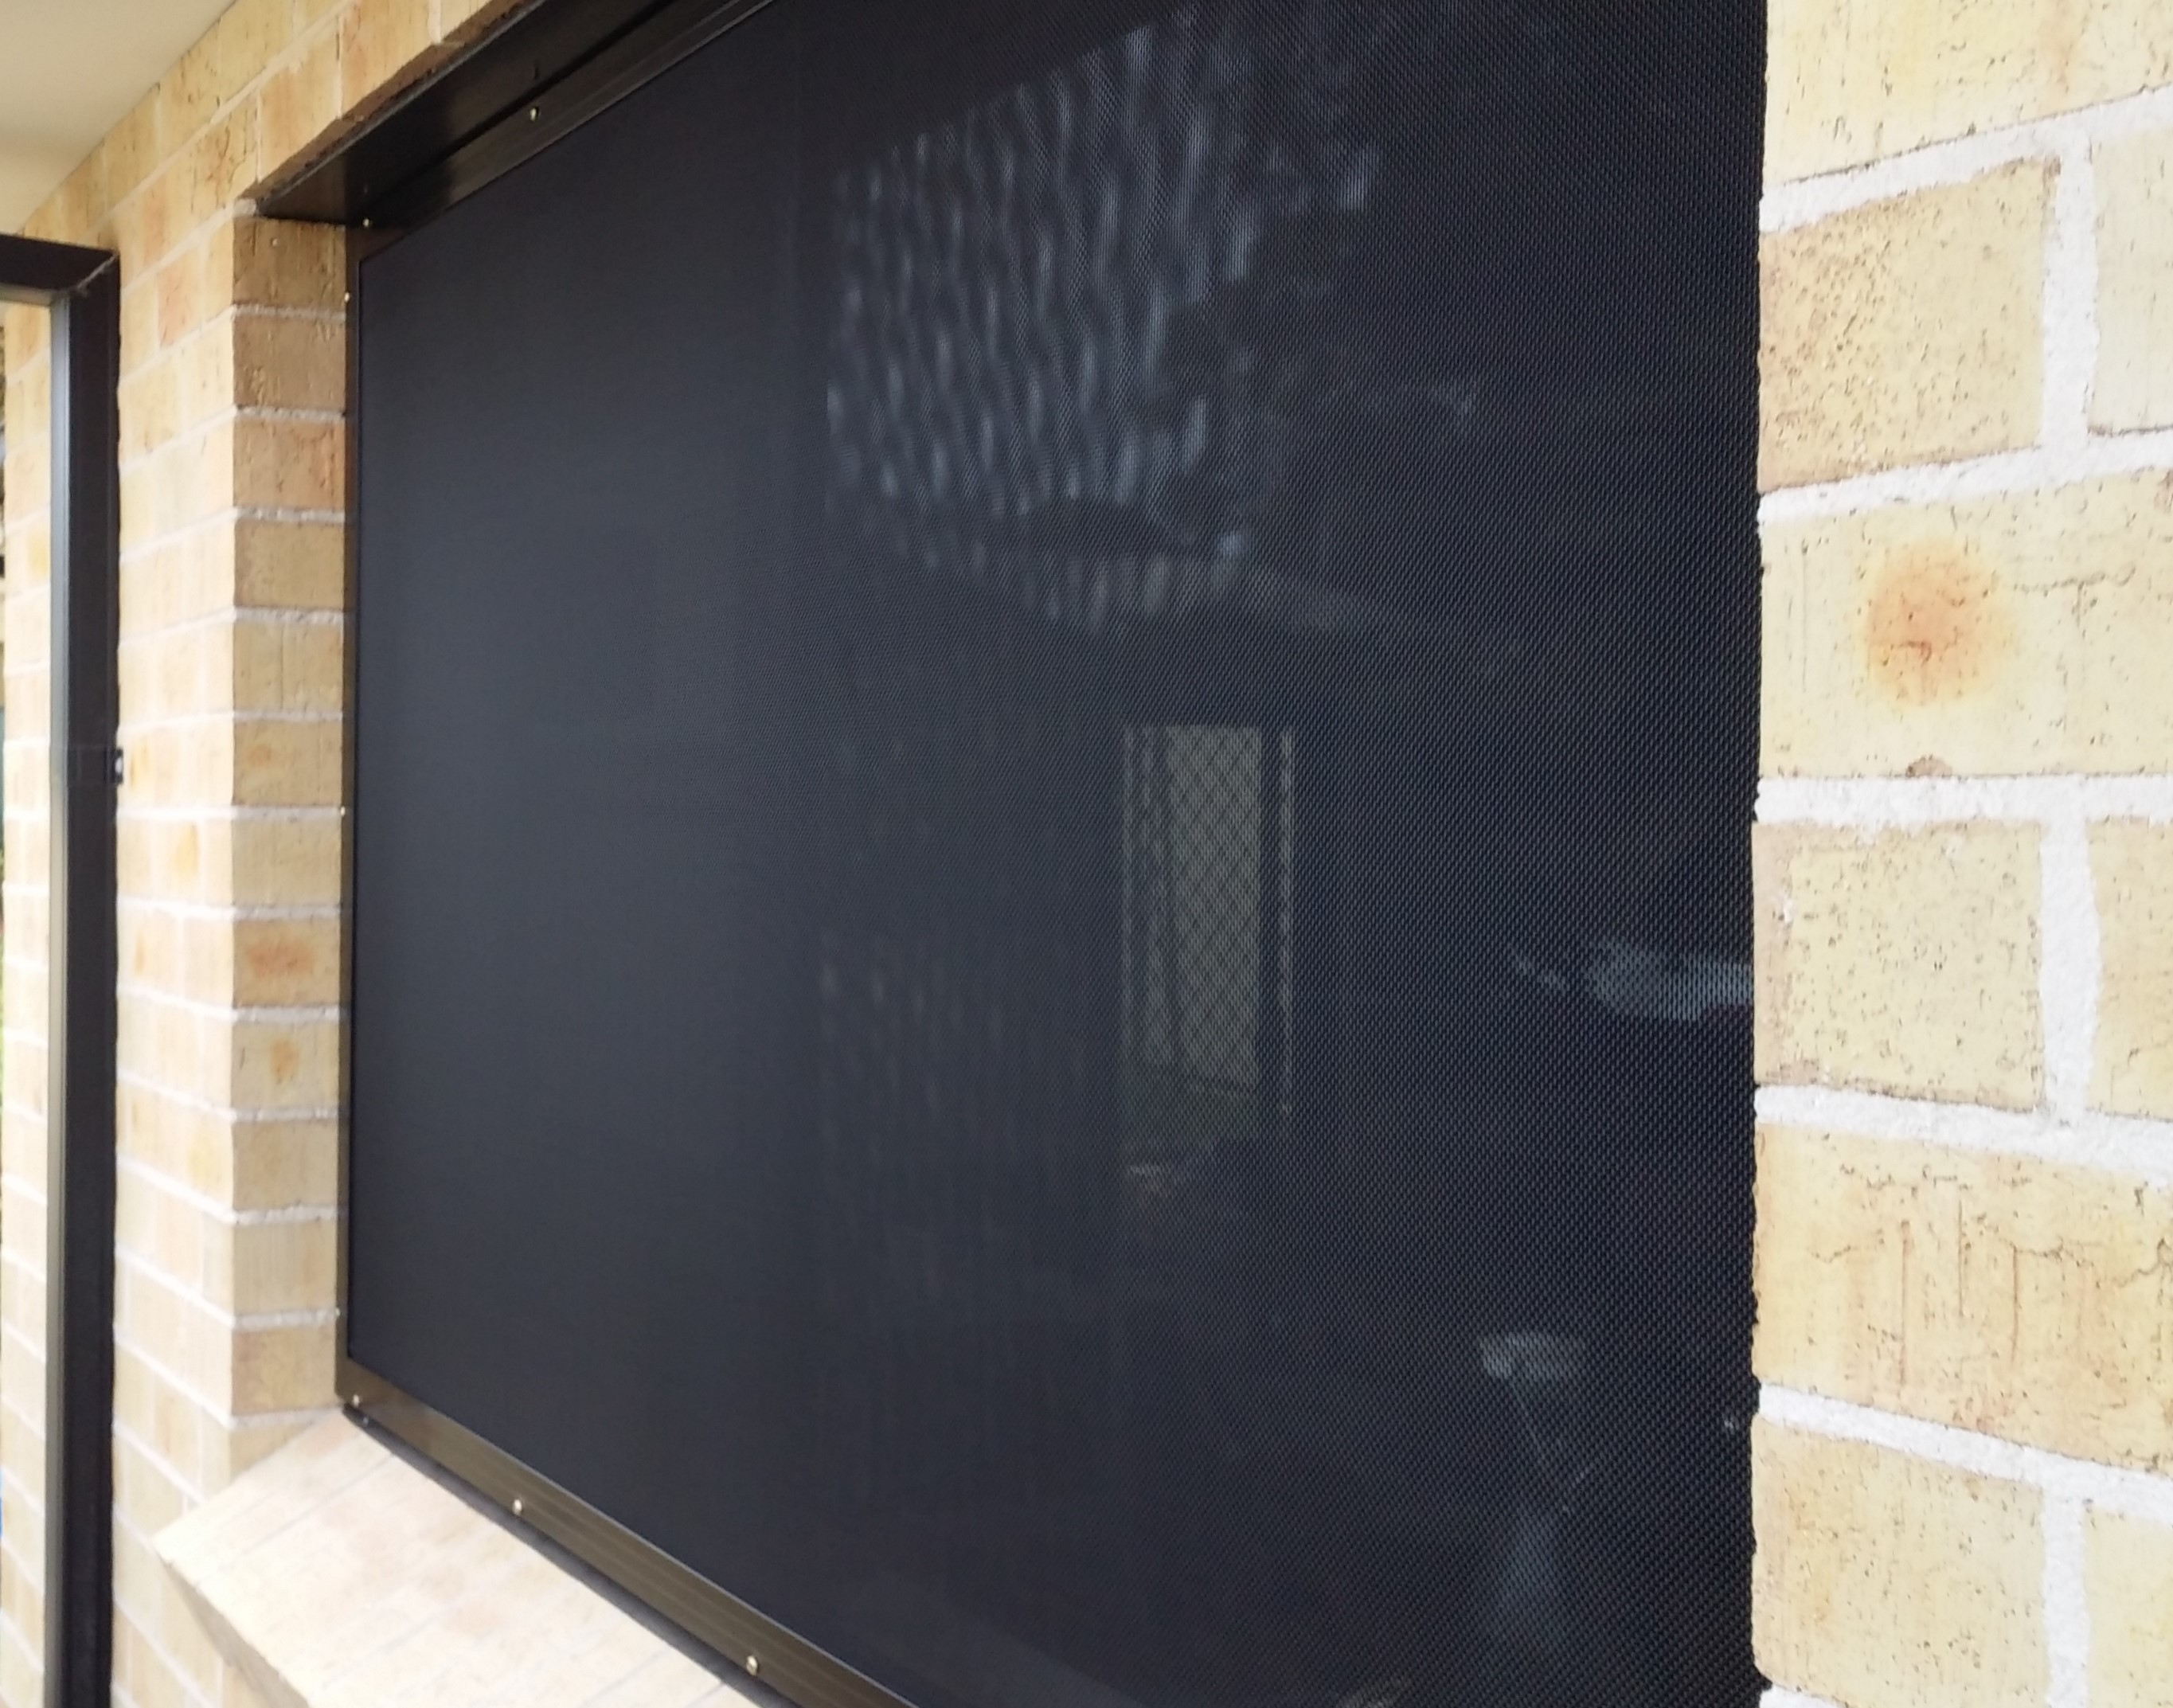 Security Screens Amp Grills In Sydney Made To Measure